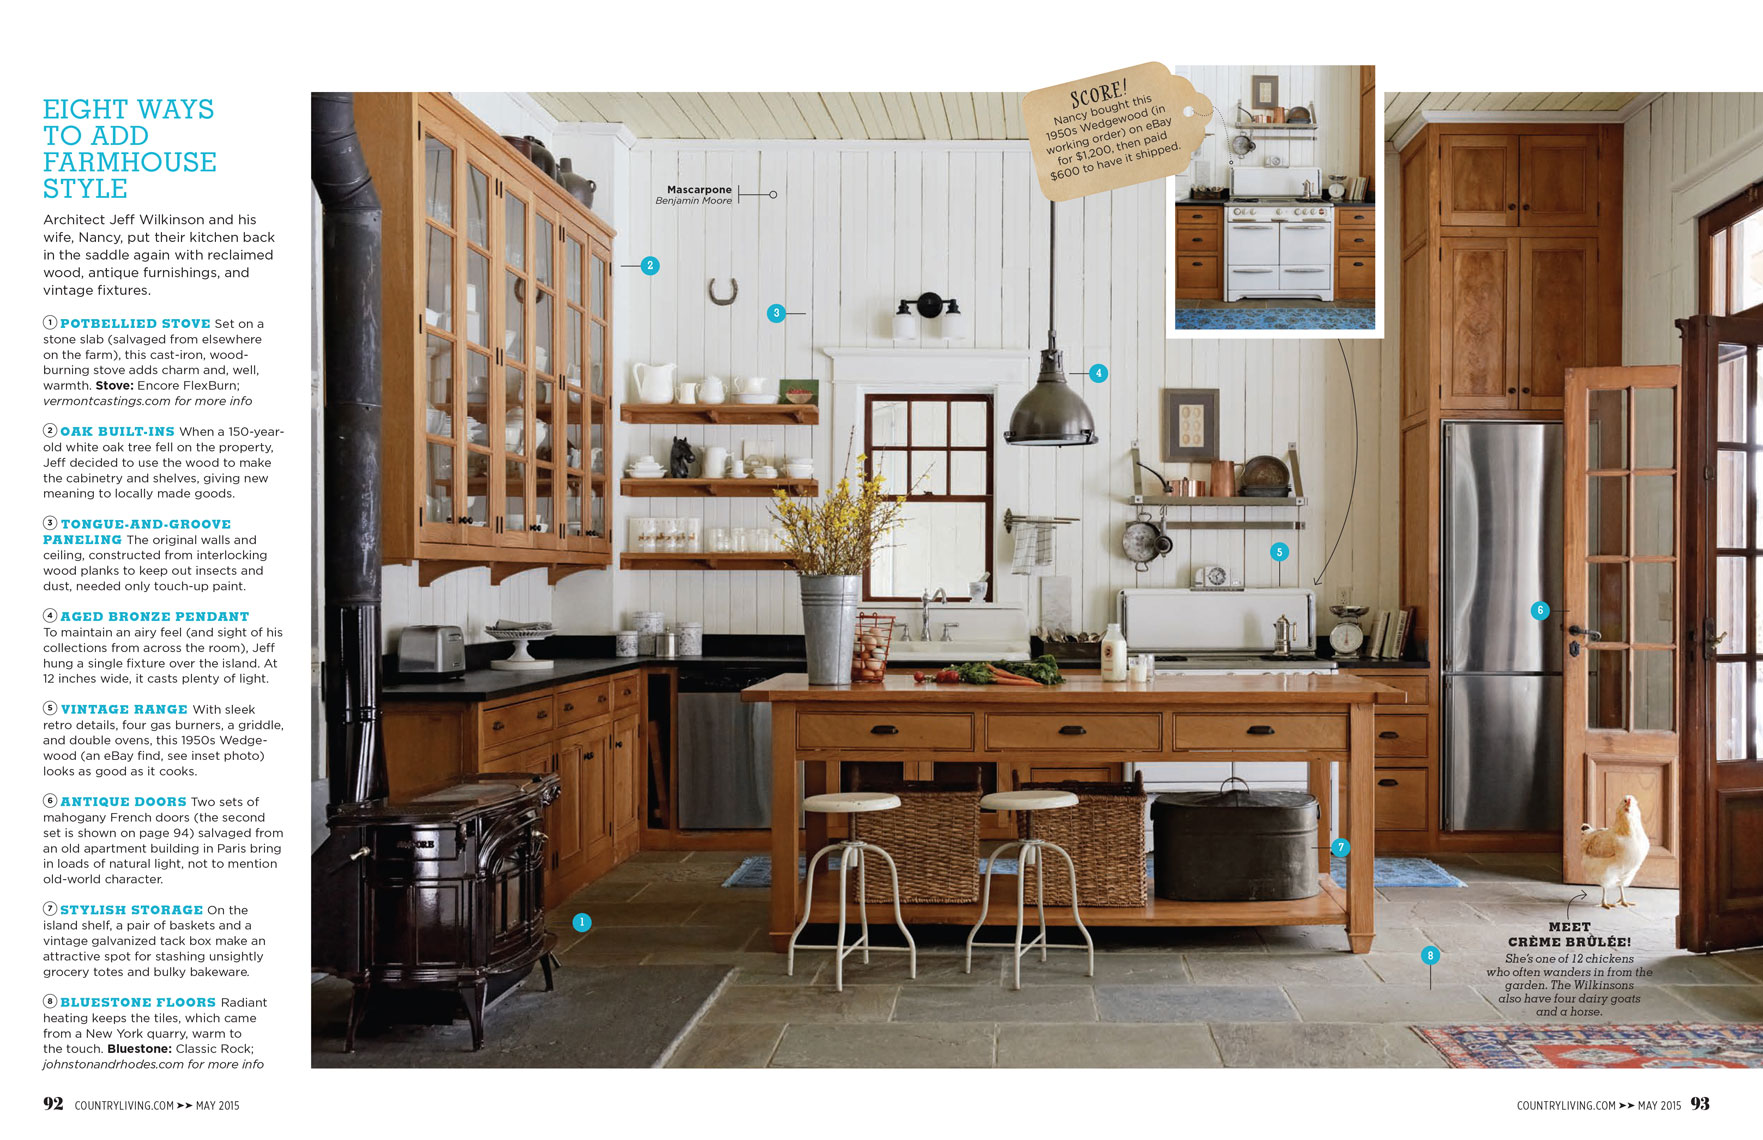 CL_Blue-Ribbon-Kitchen_APF